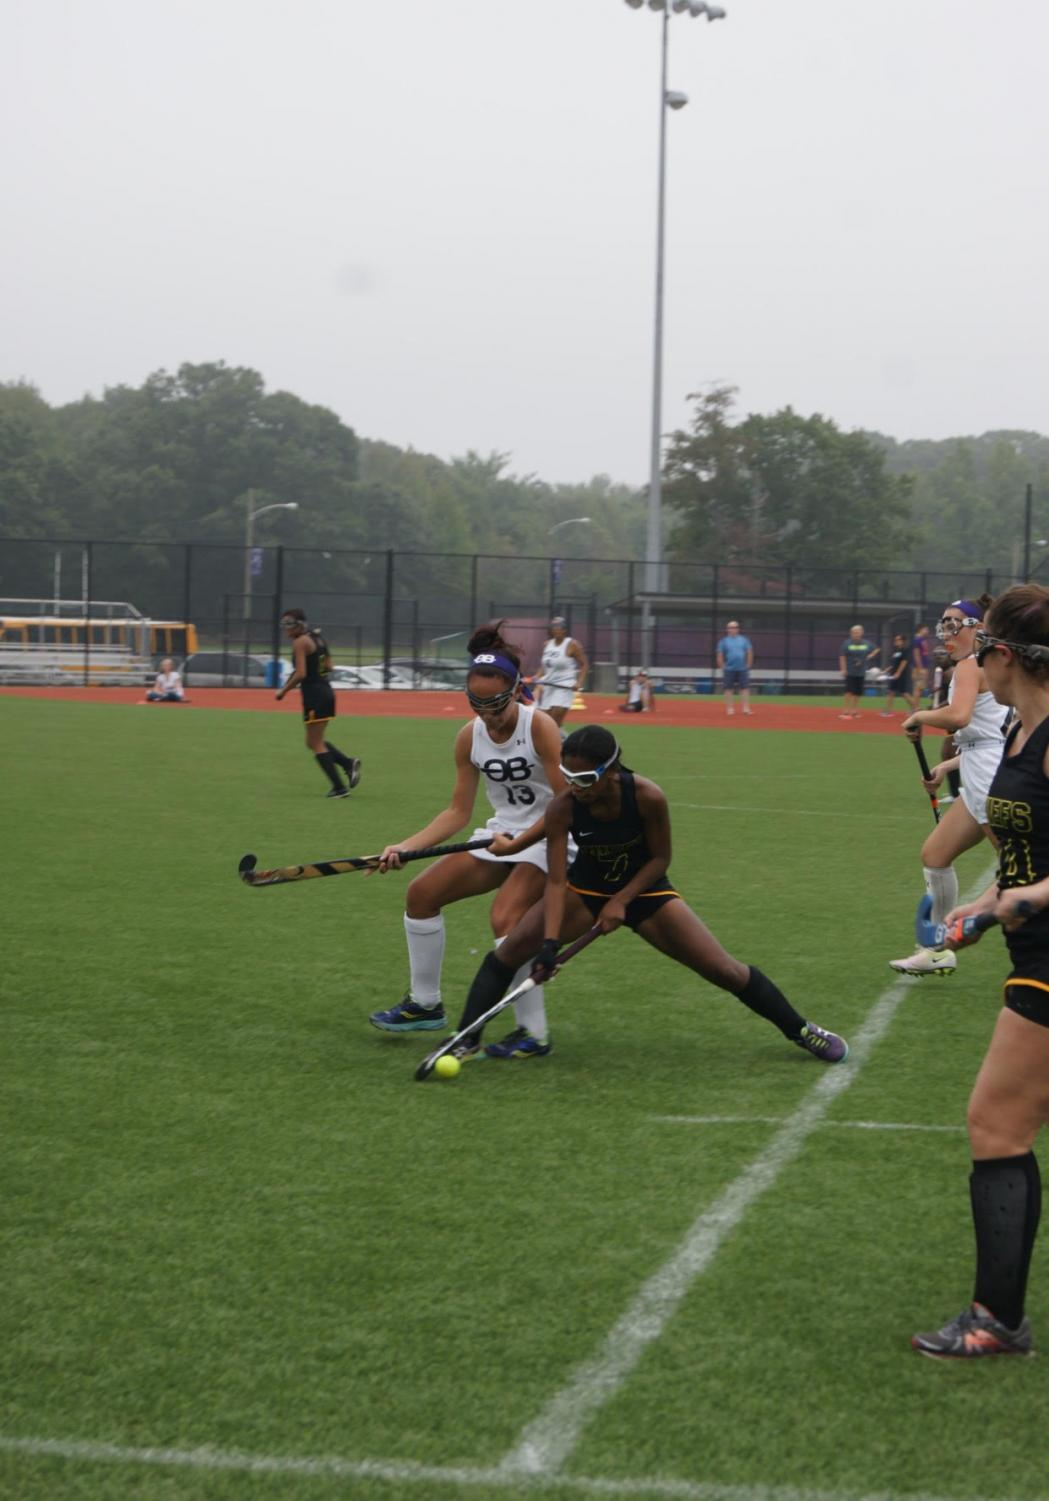 Dominique Nelson uses her defensive skills to get the ball away from her opponent.